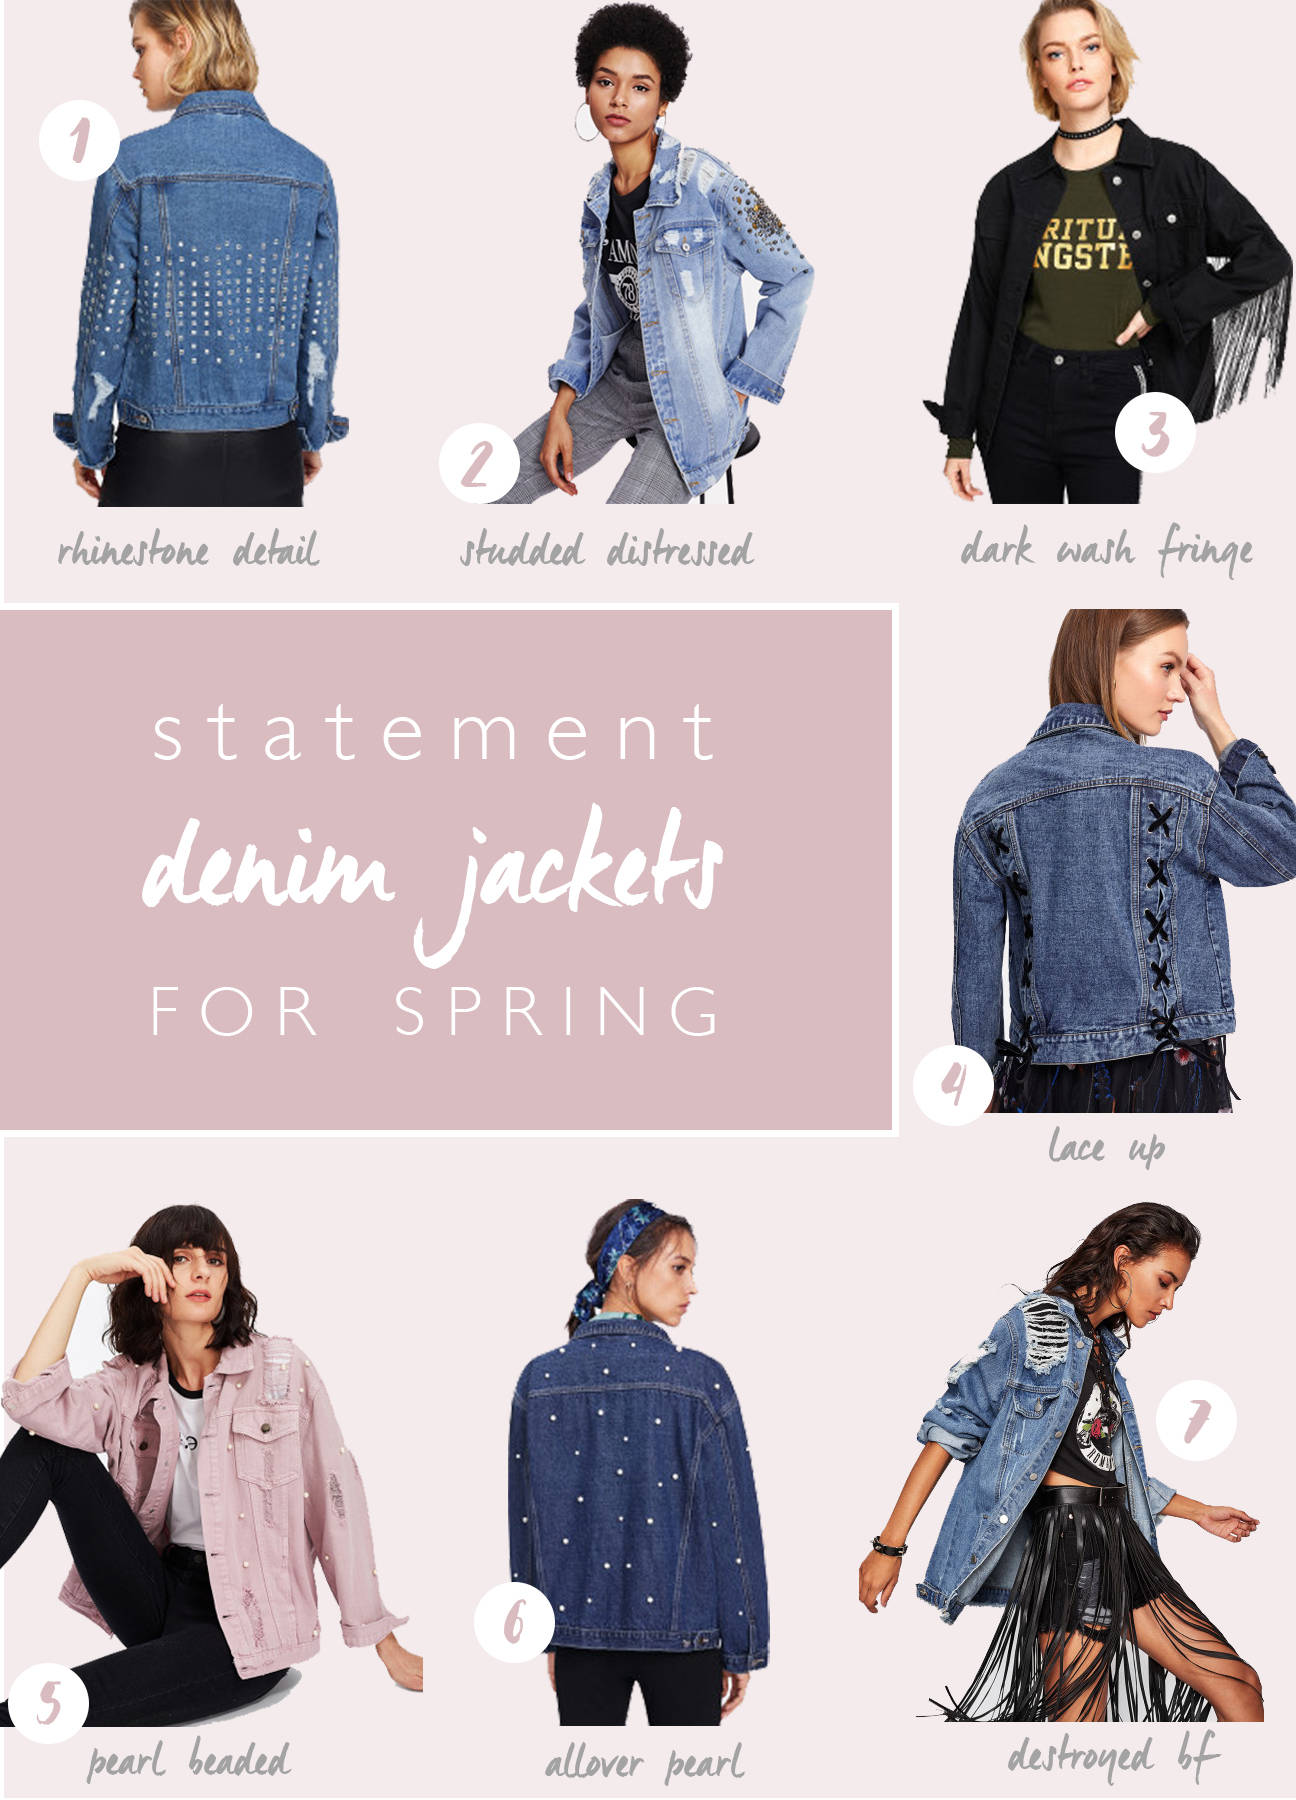 Affordable, statement denim jackets for Spring! Look cute, be warm, don't break the bank!! Love this round up! I hope you love it too!